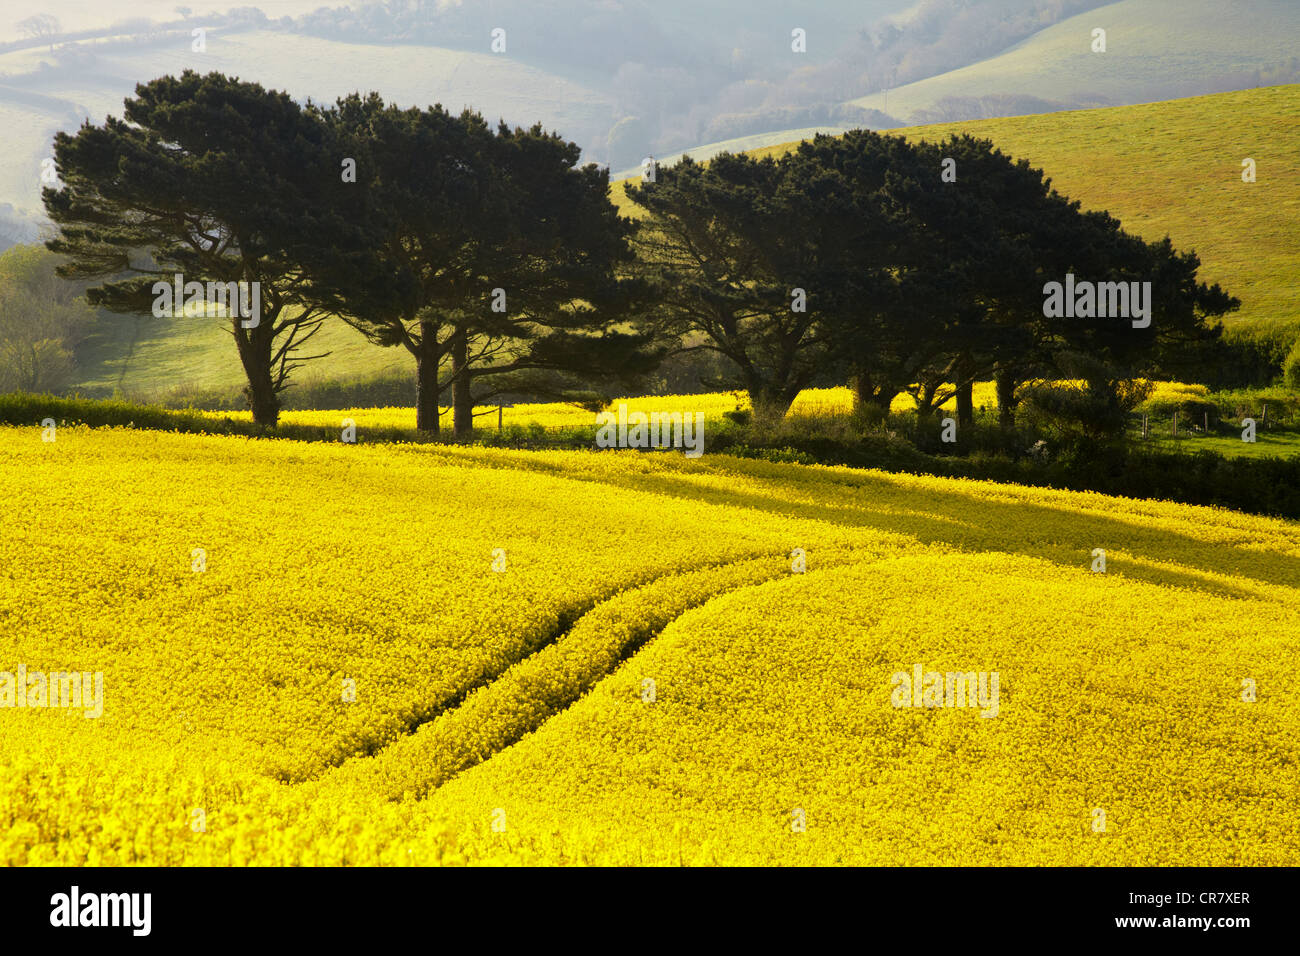 Rapeseed crop in the Devon countryside - Stock Image